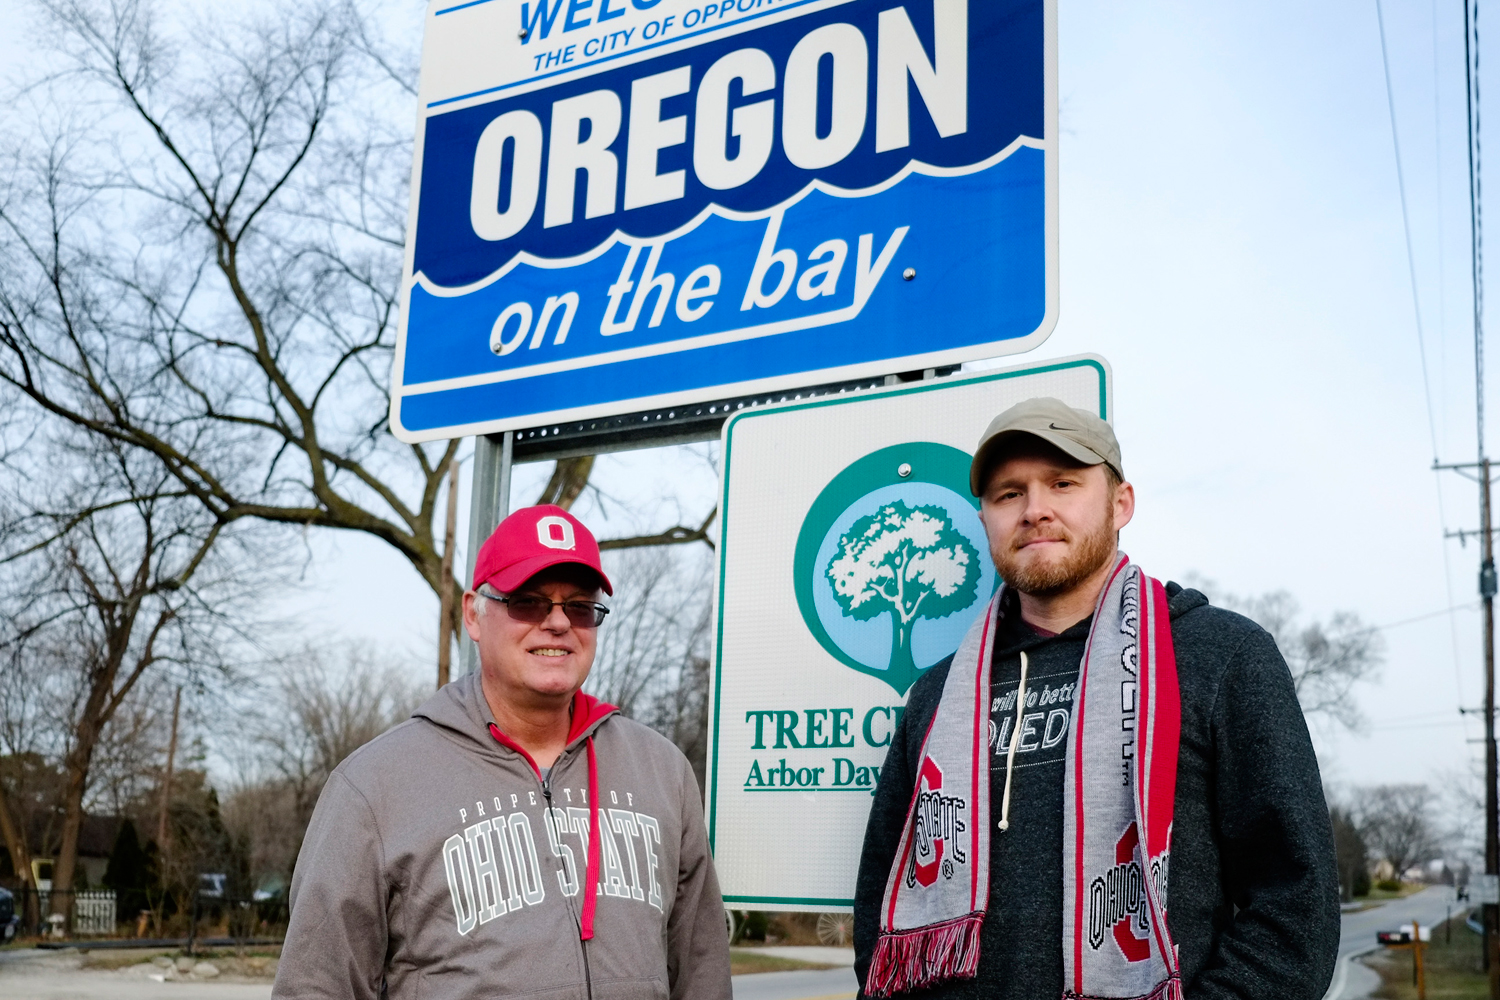 Standing at the Oregon, Ohio, city limits sign, Dick Squibb and his son Matt, who petitioned the city to change its name to show allegiance to the Ohio State Buckeyes, January 2, 2015.